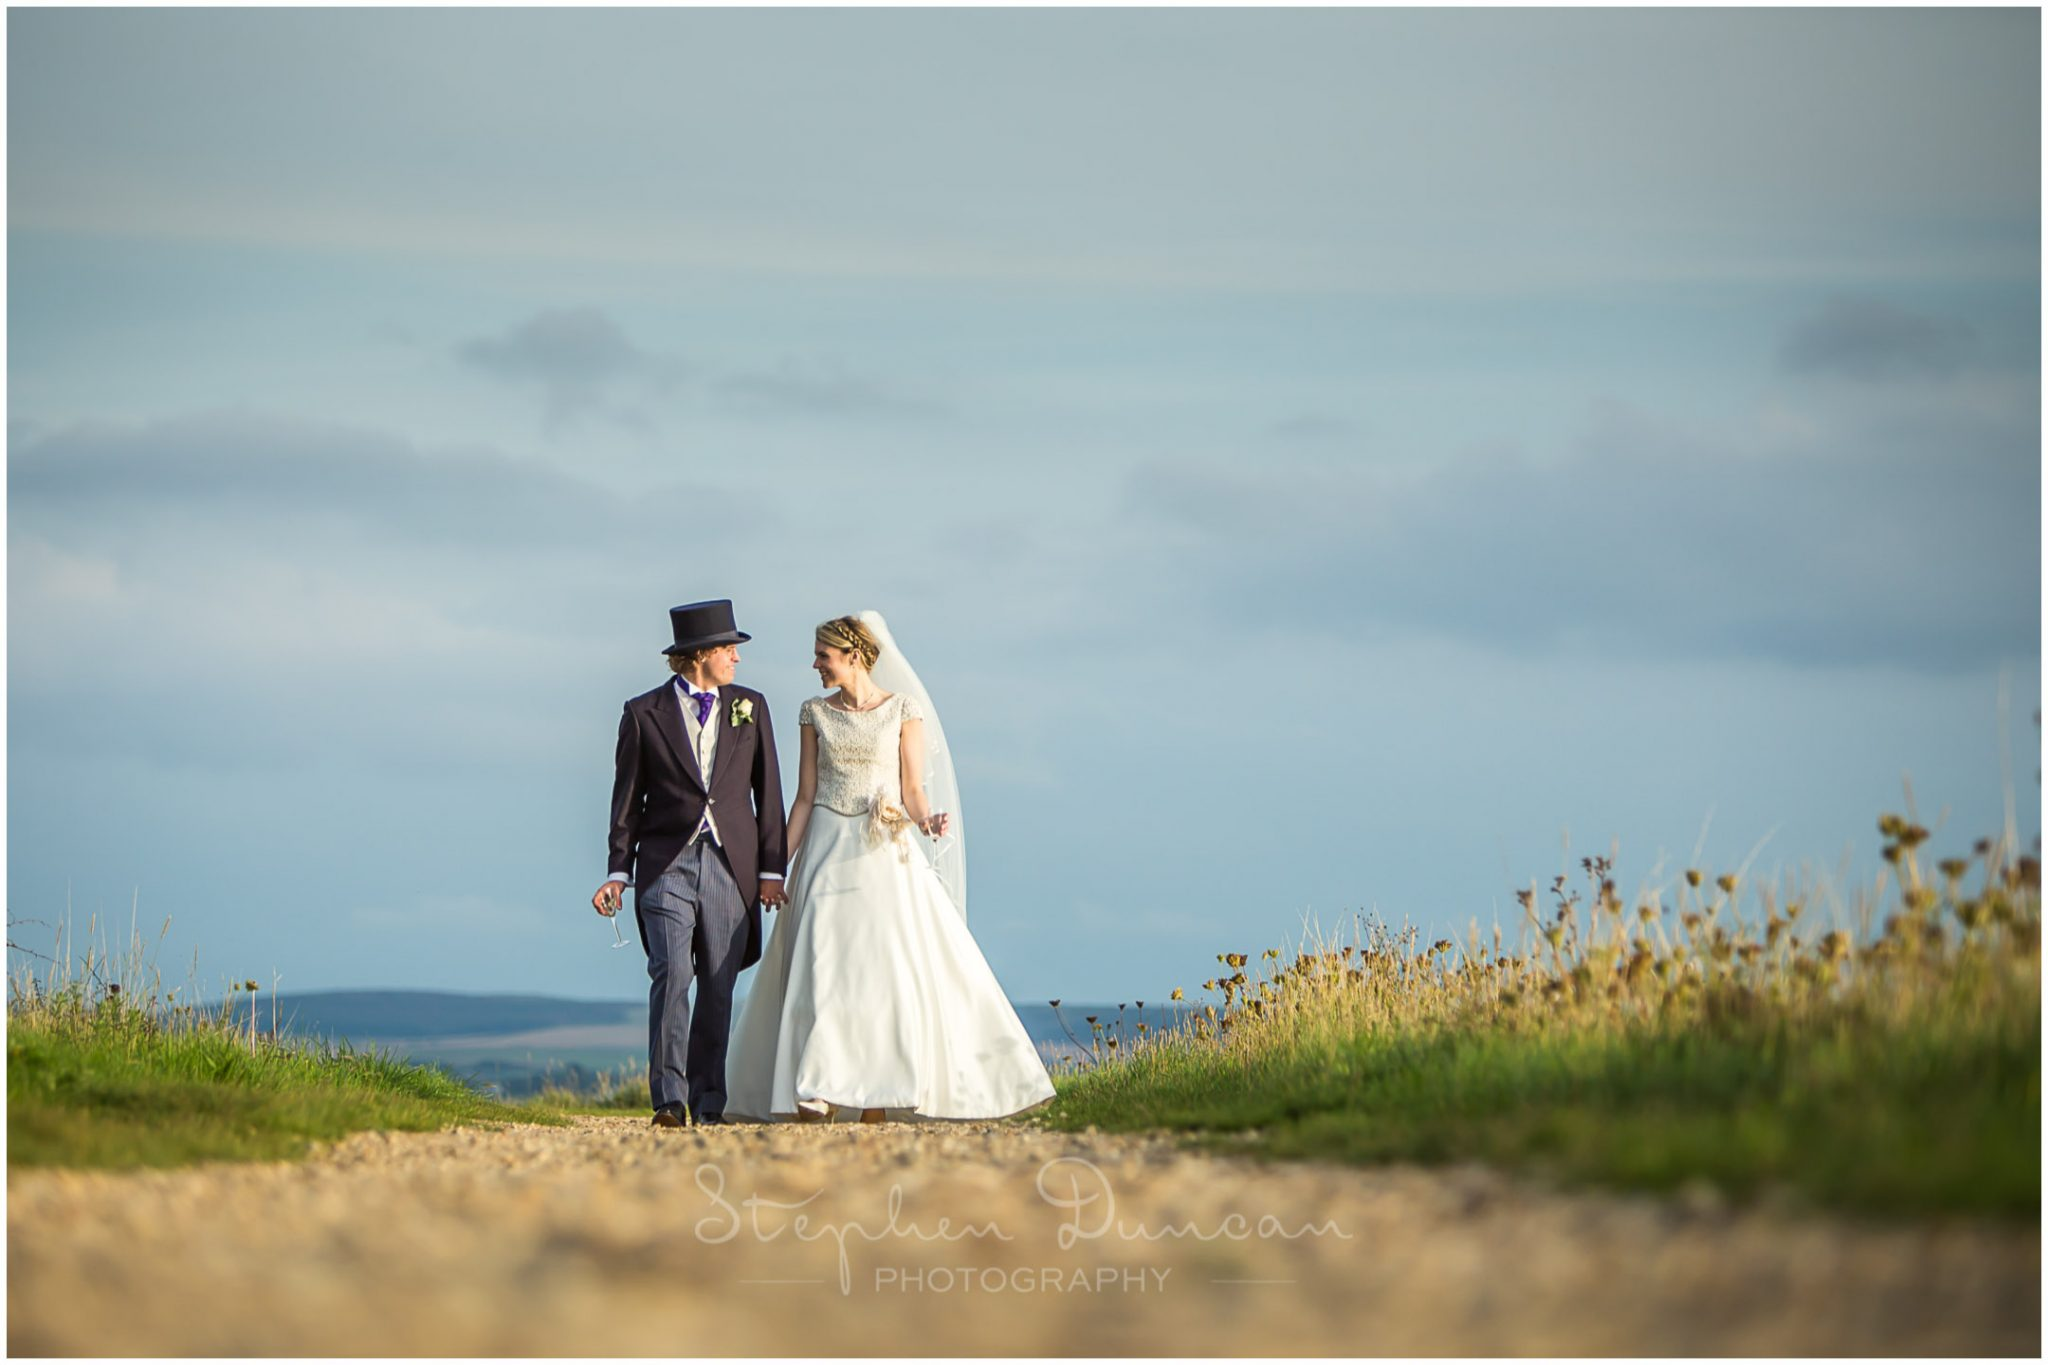 Lymington wedding photography couple walk in sunshine